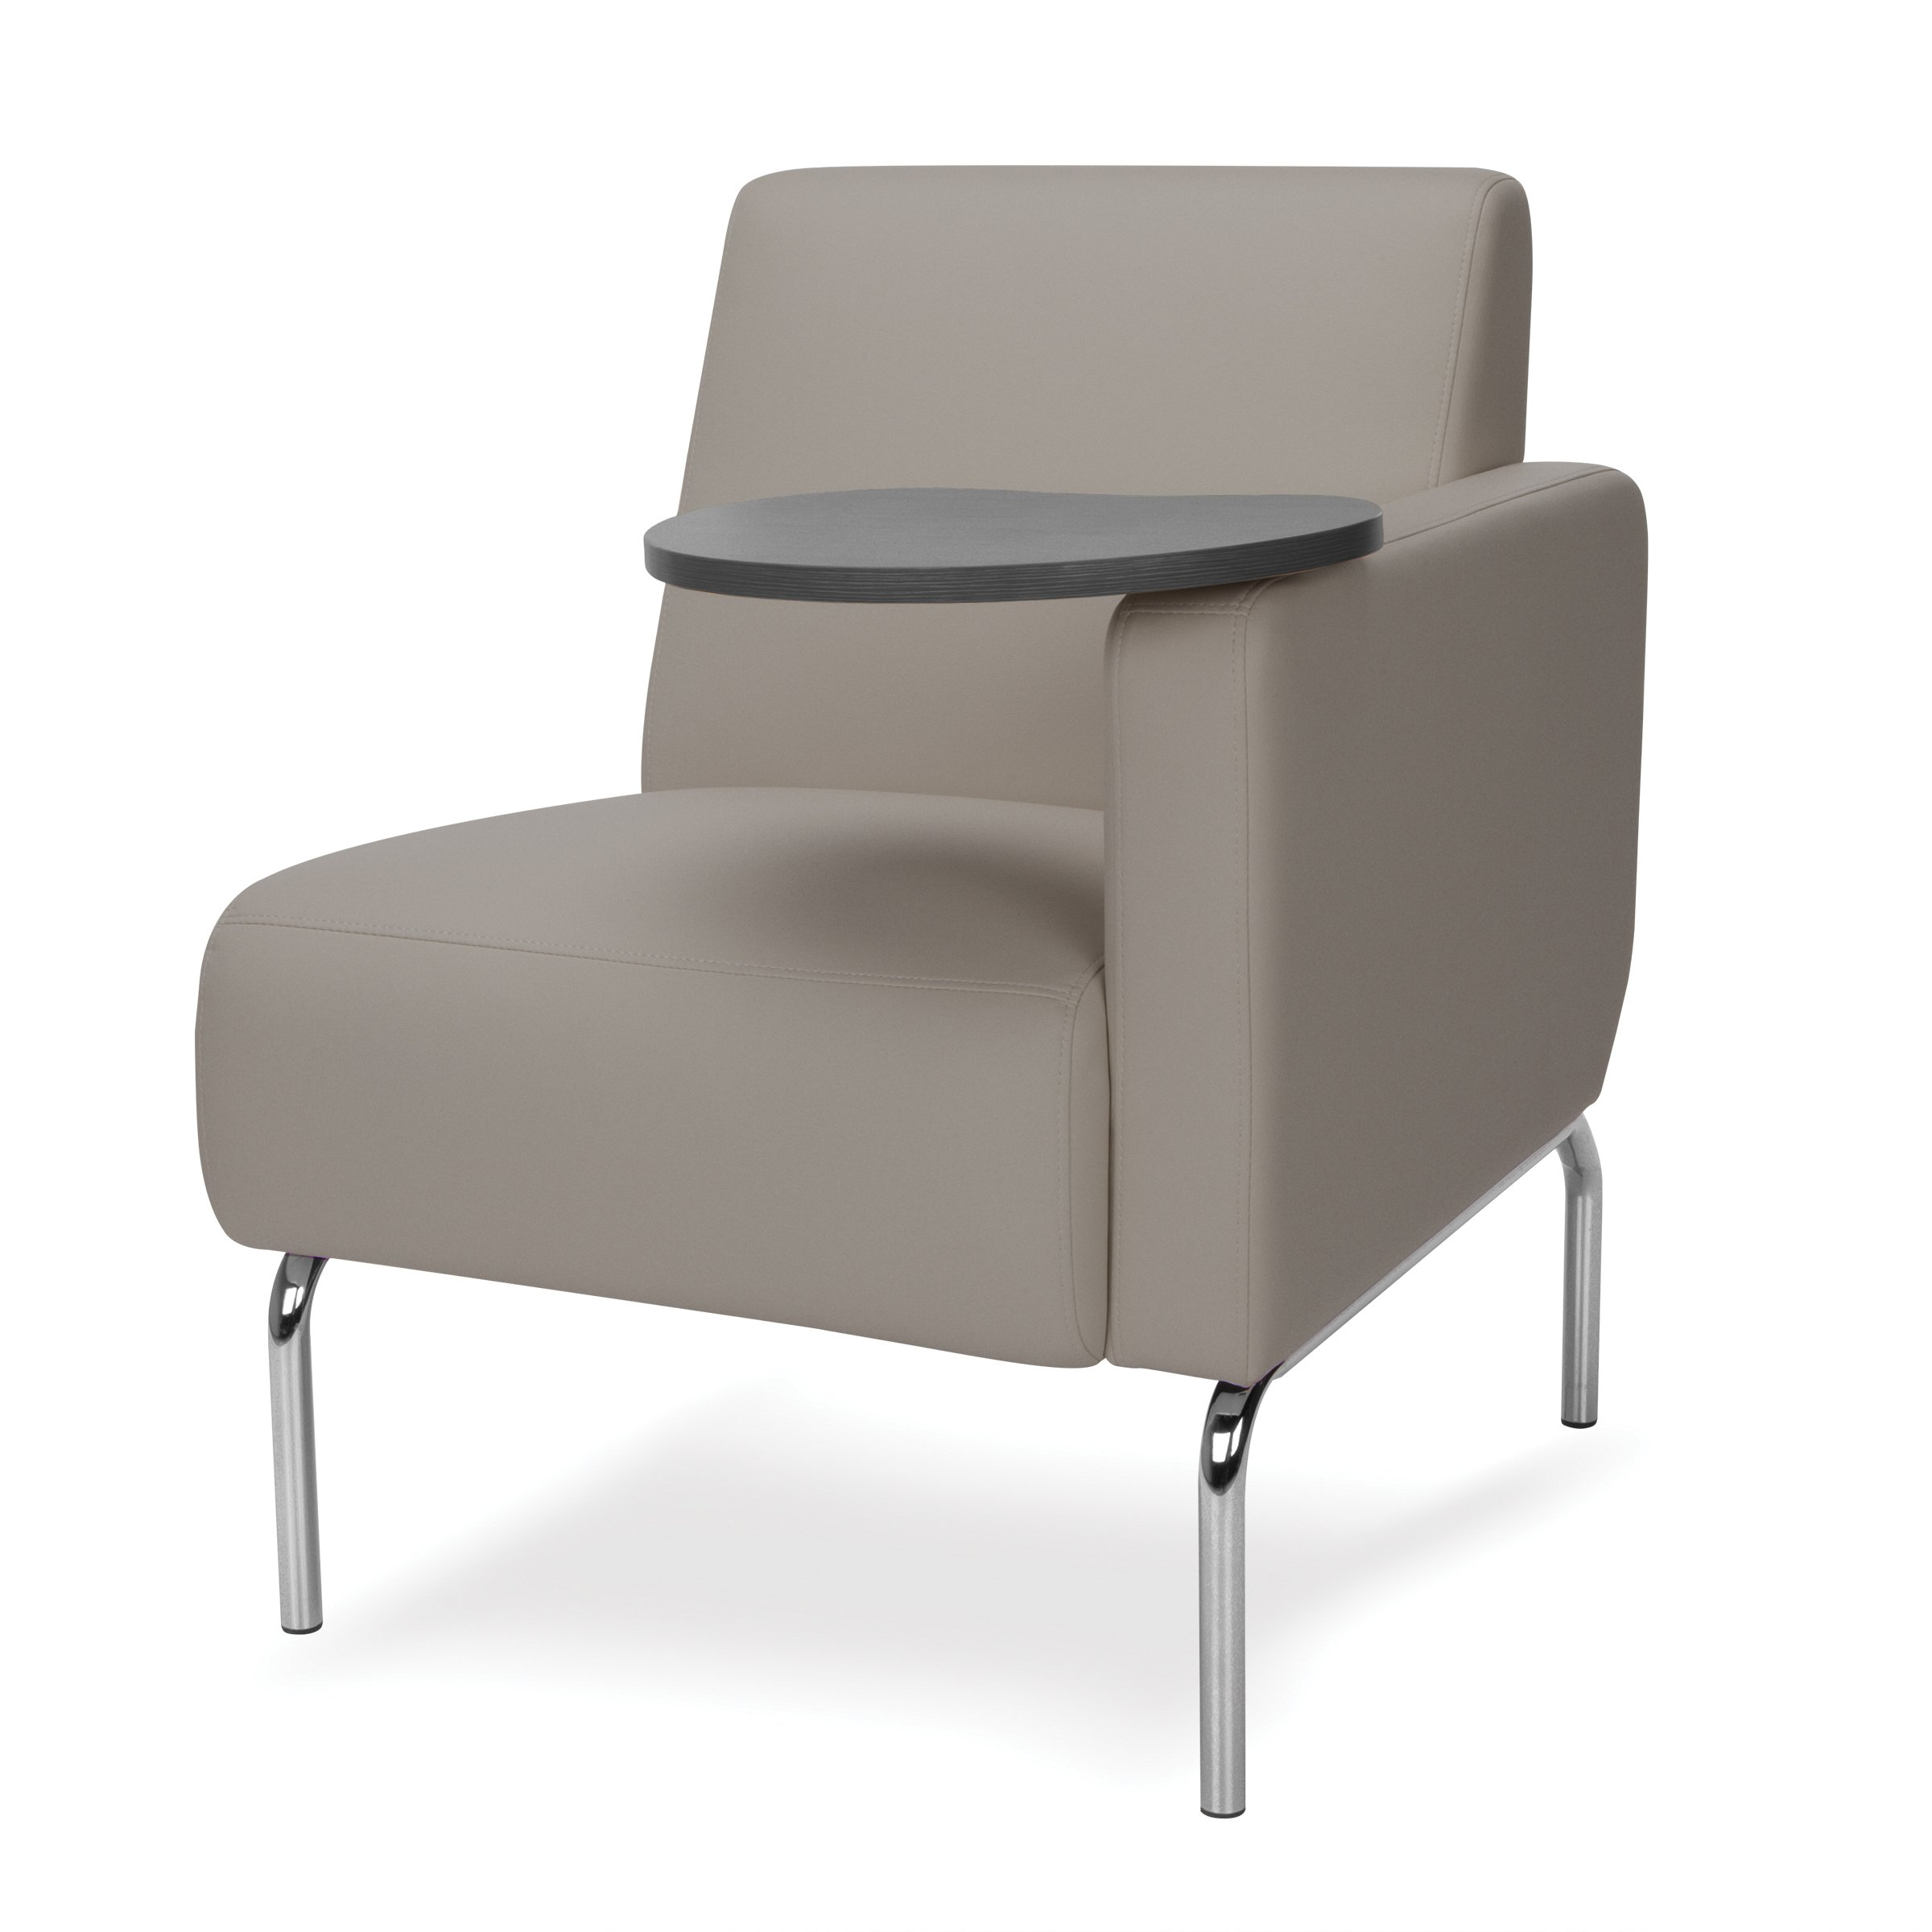 OFM 3001LT-PU607-TG Triumph Series Left Arm Modular Lounge Chair with Tungsten Tablet, Polyurethane Seat and Chrome Feet, Taupe